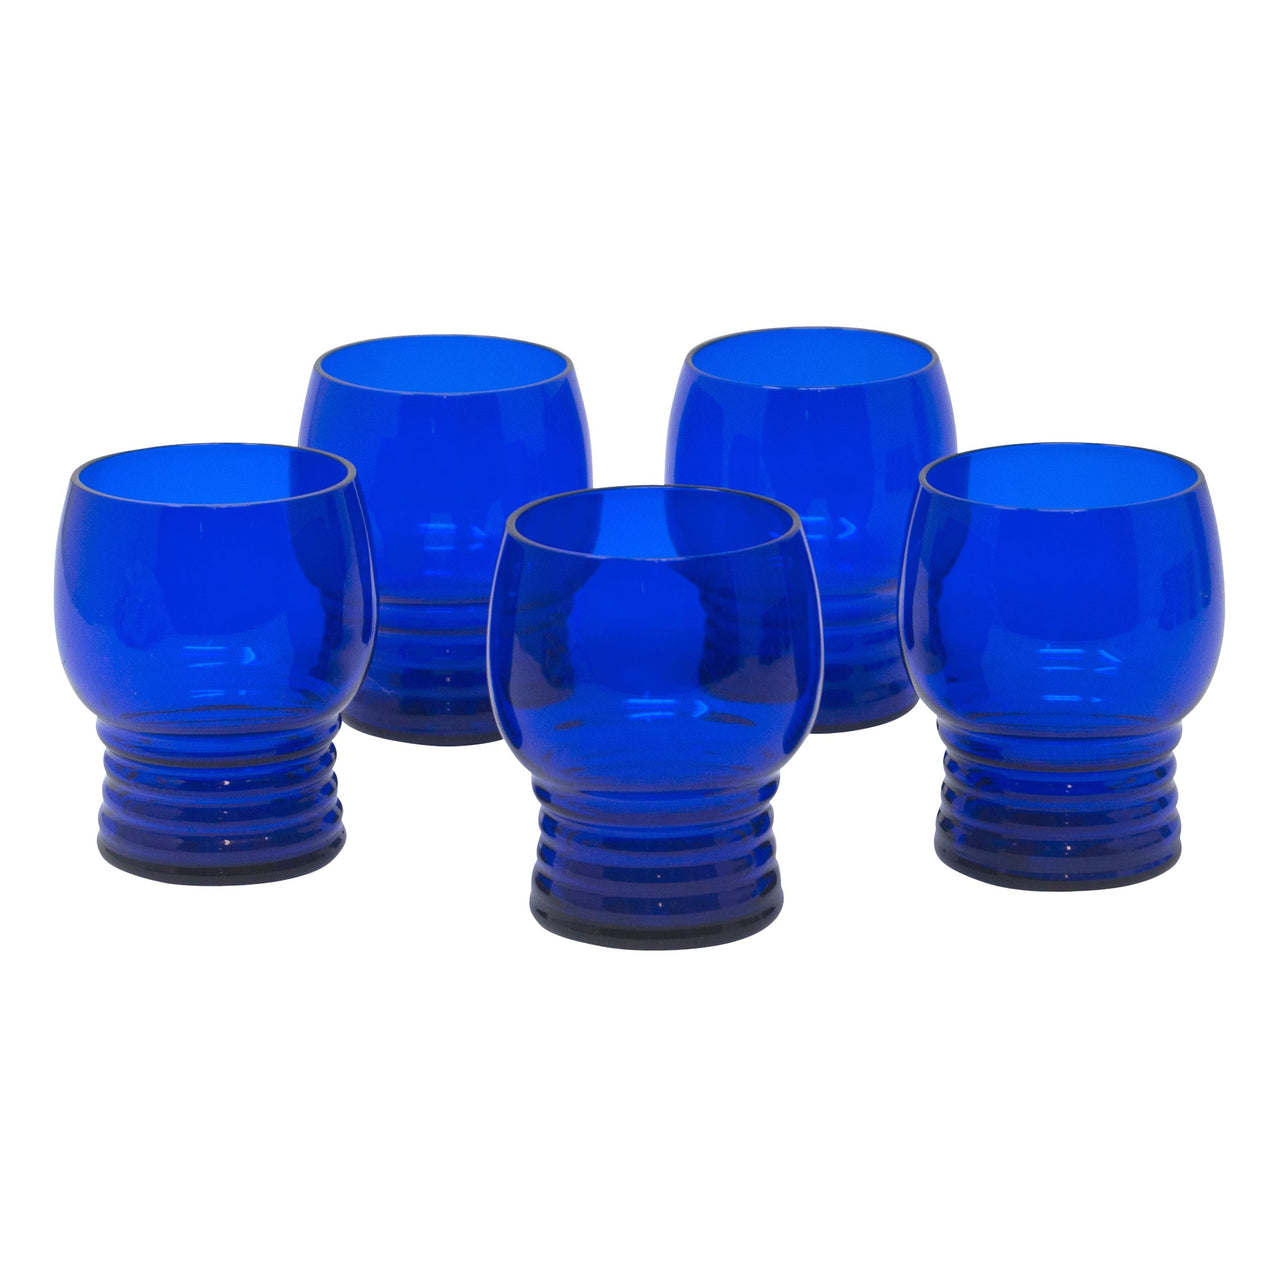 Vintage Art Deco Cobalt Blue Ridged Bottom Small Tumblers | The Hour Shop